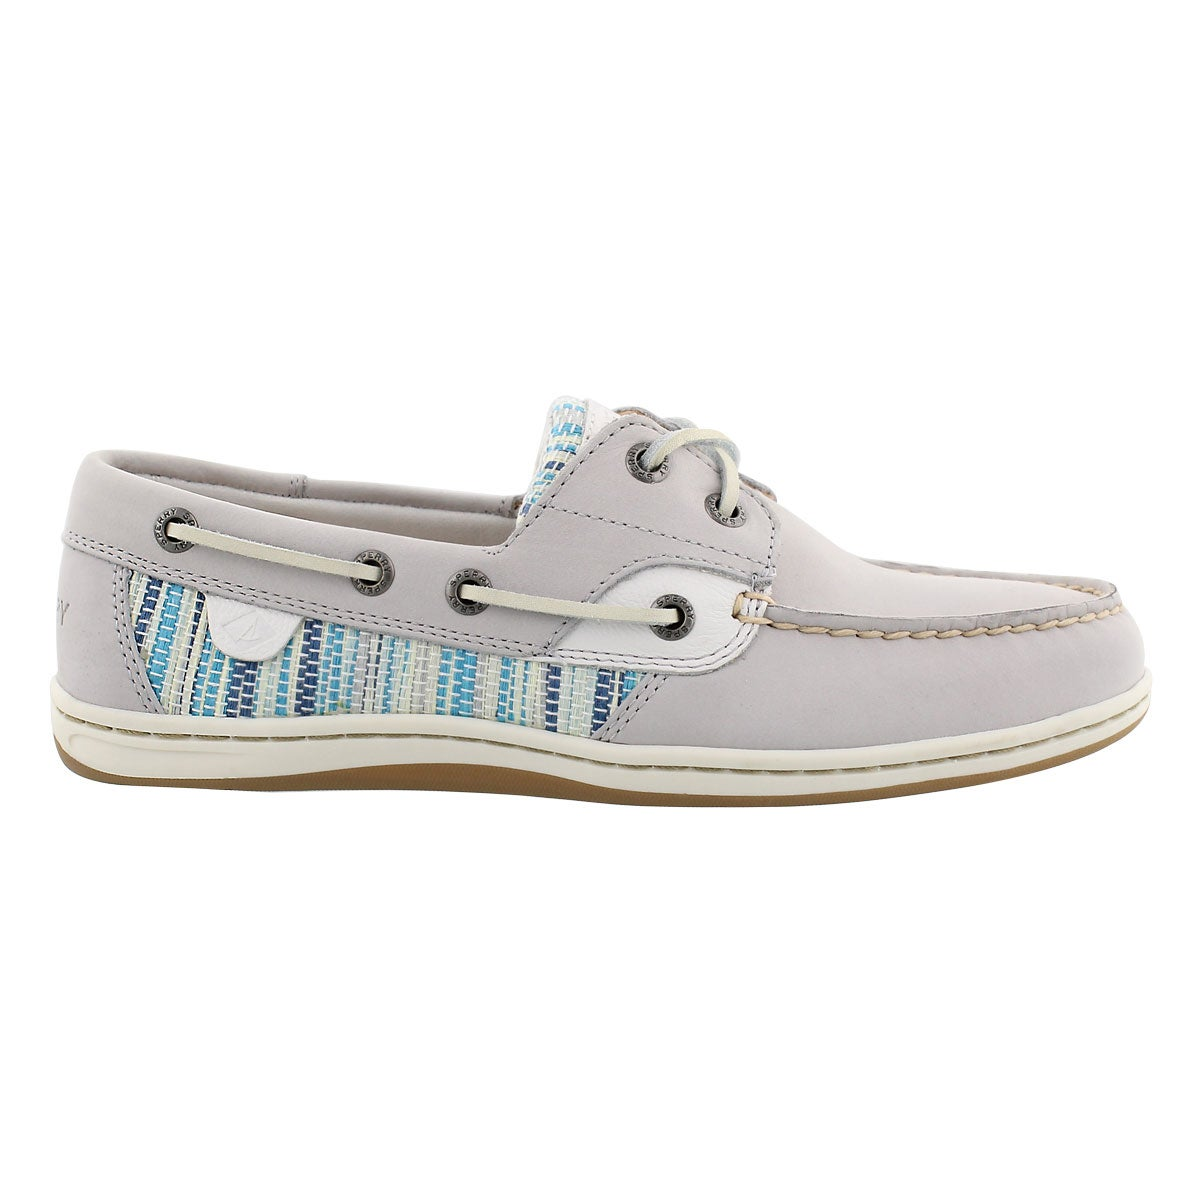 Lds Koifish Raffia Stripe grey boat shoe